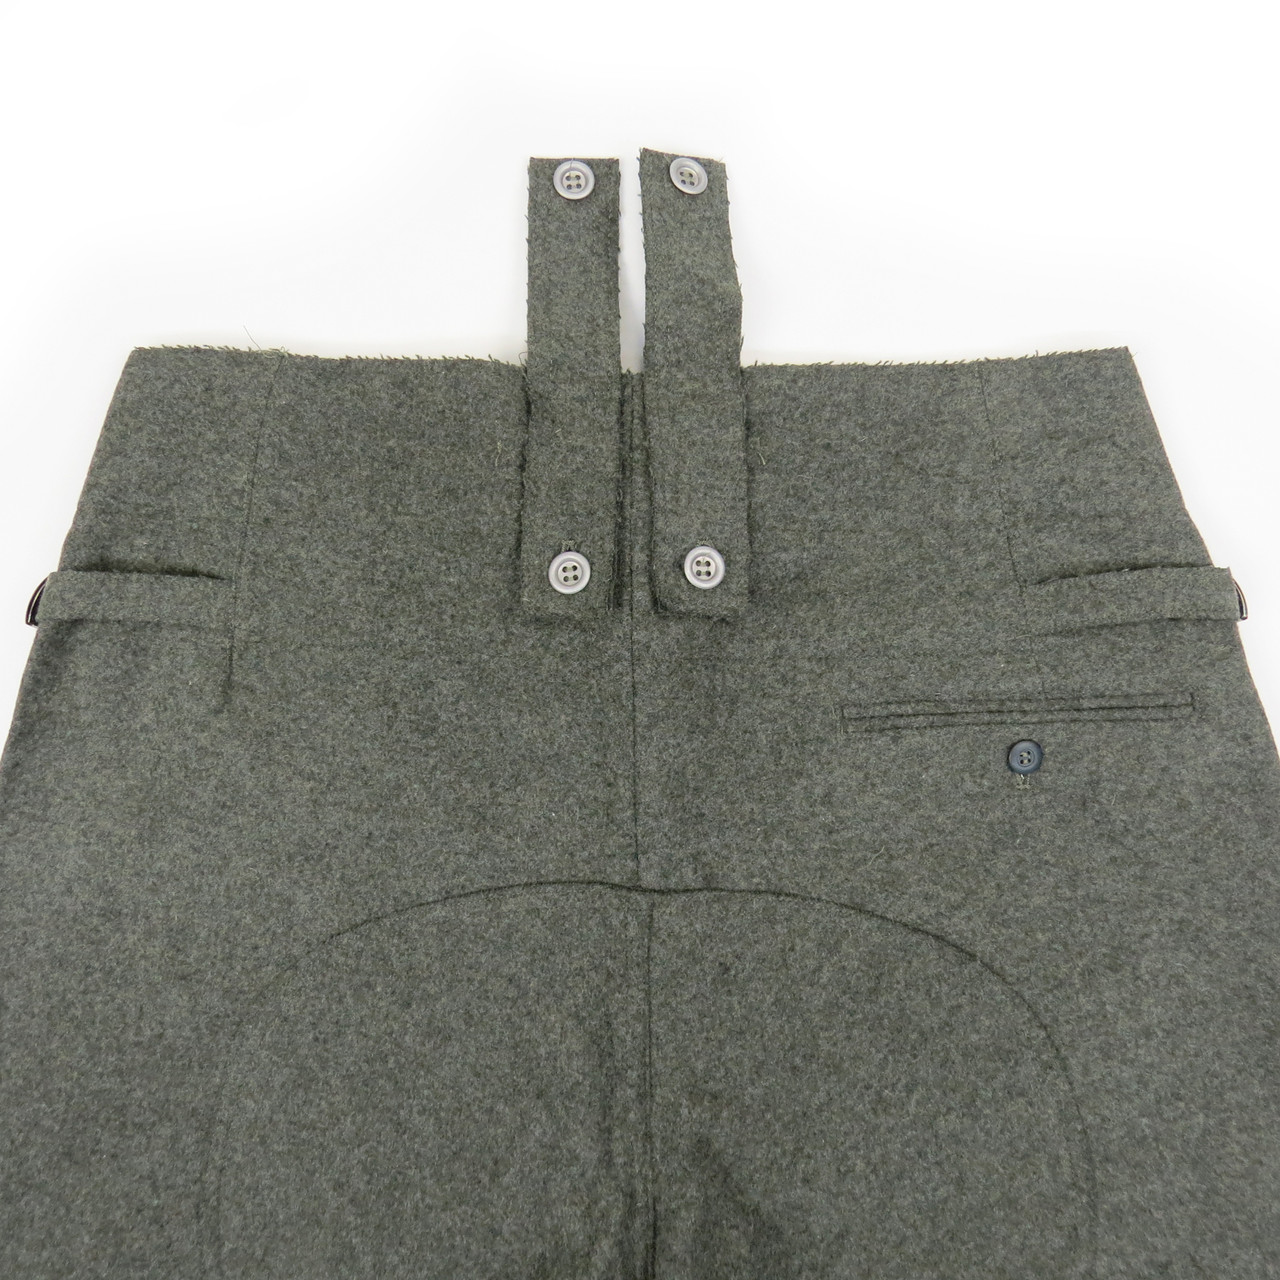 M43 Trousers from Hessen Antique